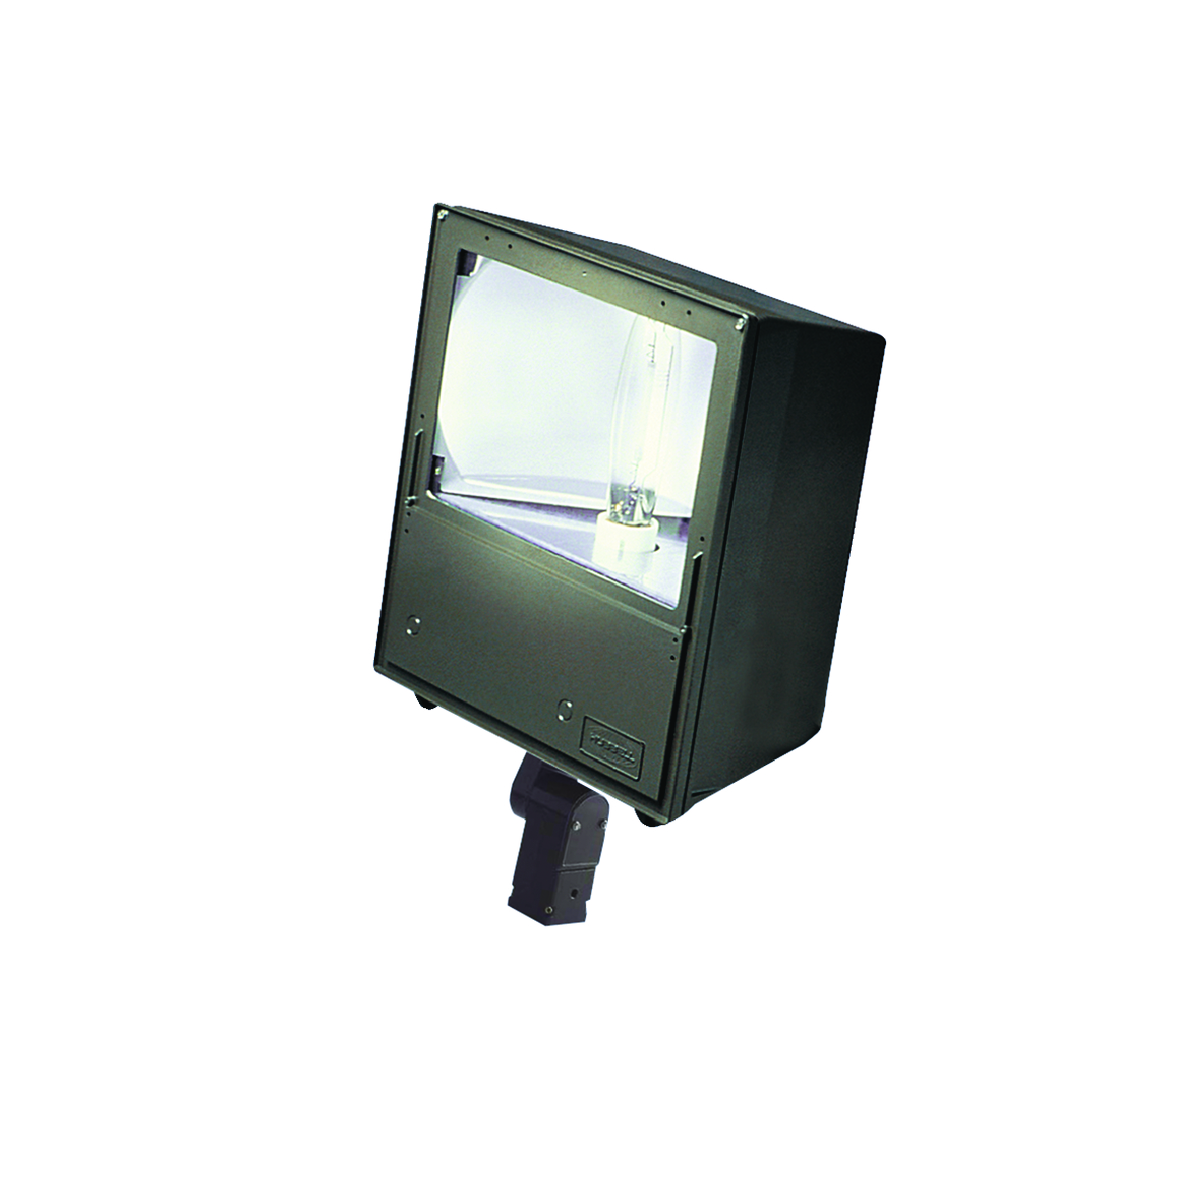 Magnuliter Mv Mh Brand Hubbell Outdoor Lighting Pole Mounted Security Light Wiring Diagram By